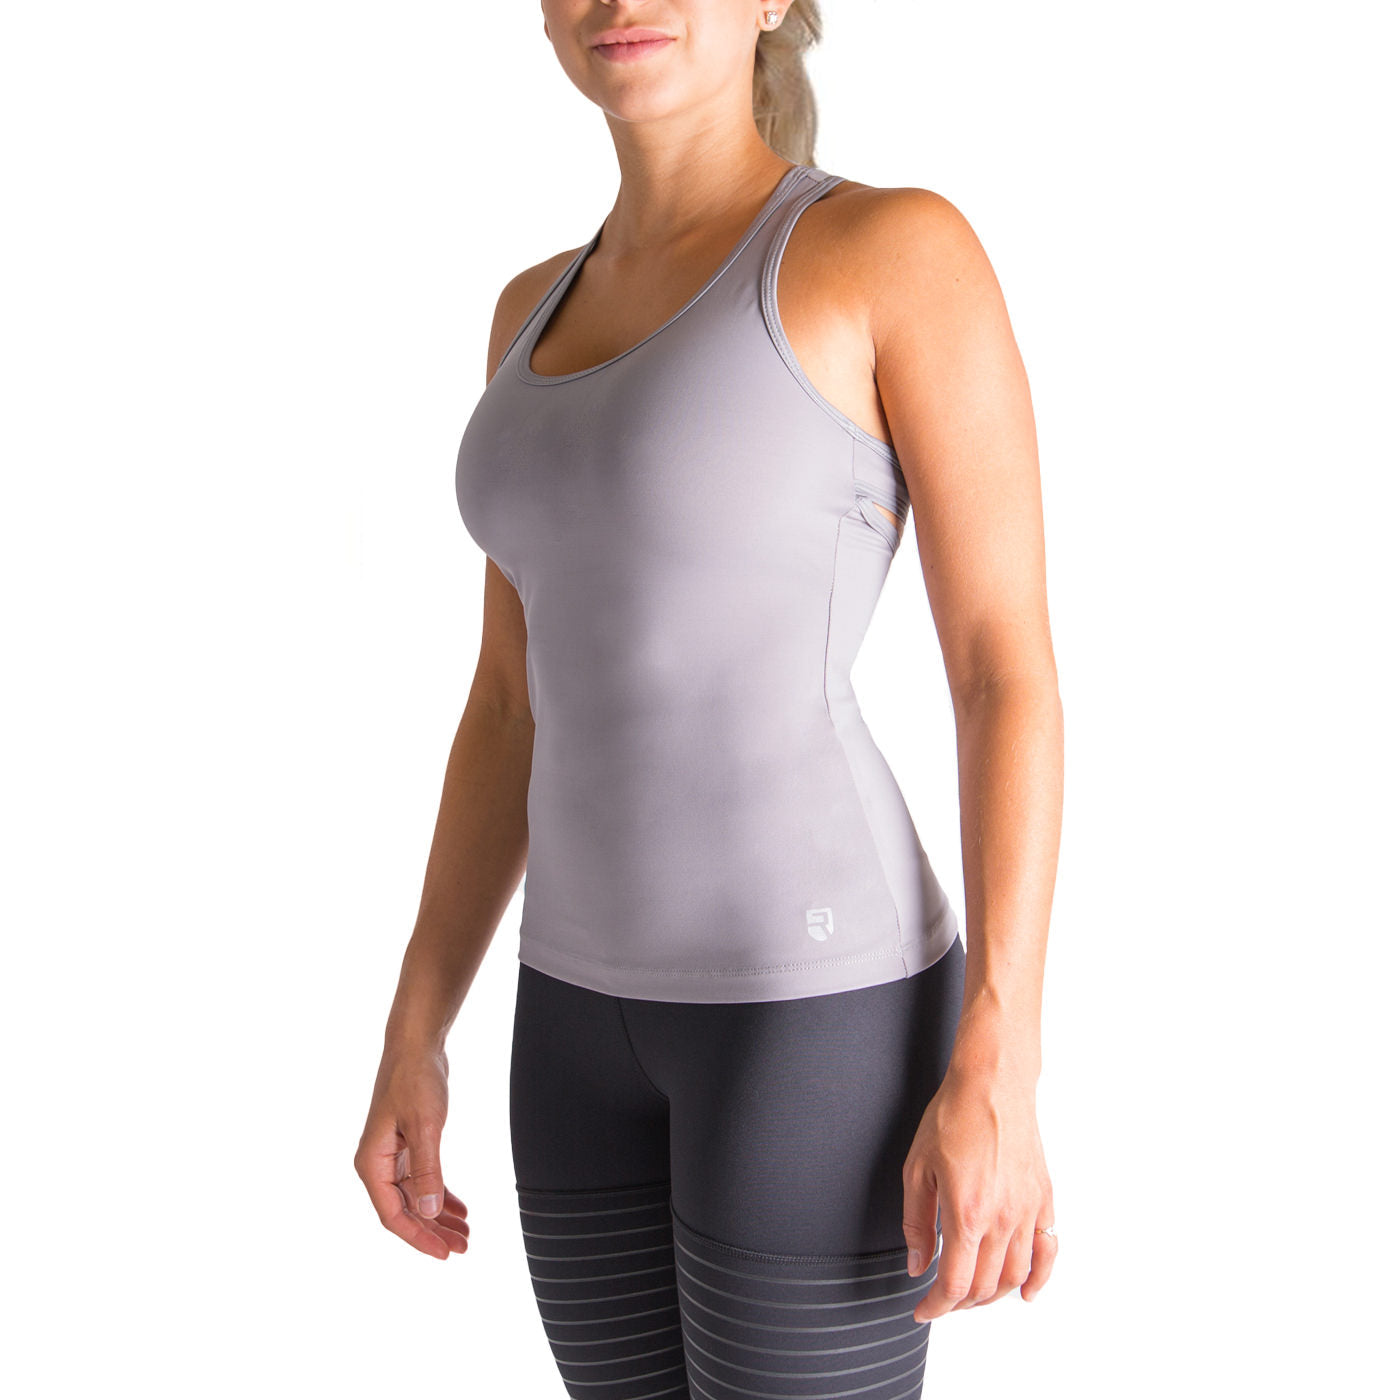 Finish Line Tank Top – Grey - Rise